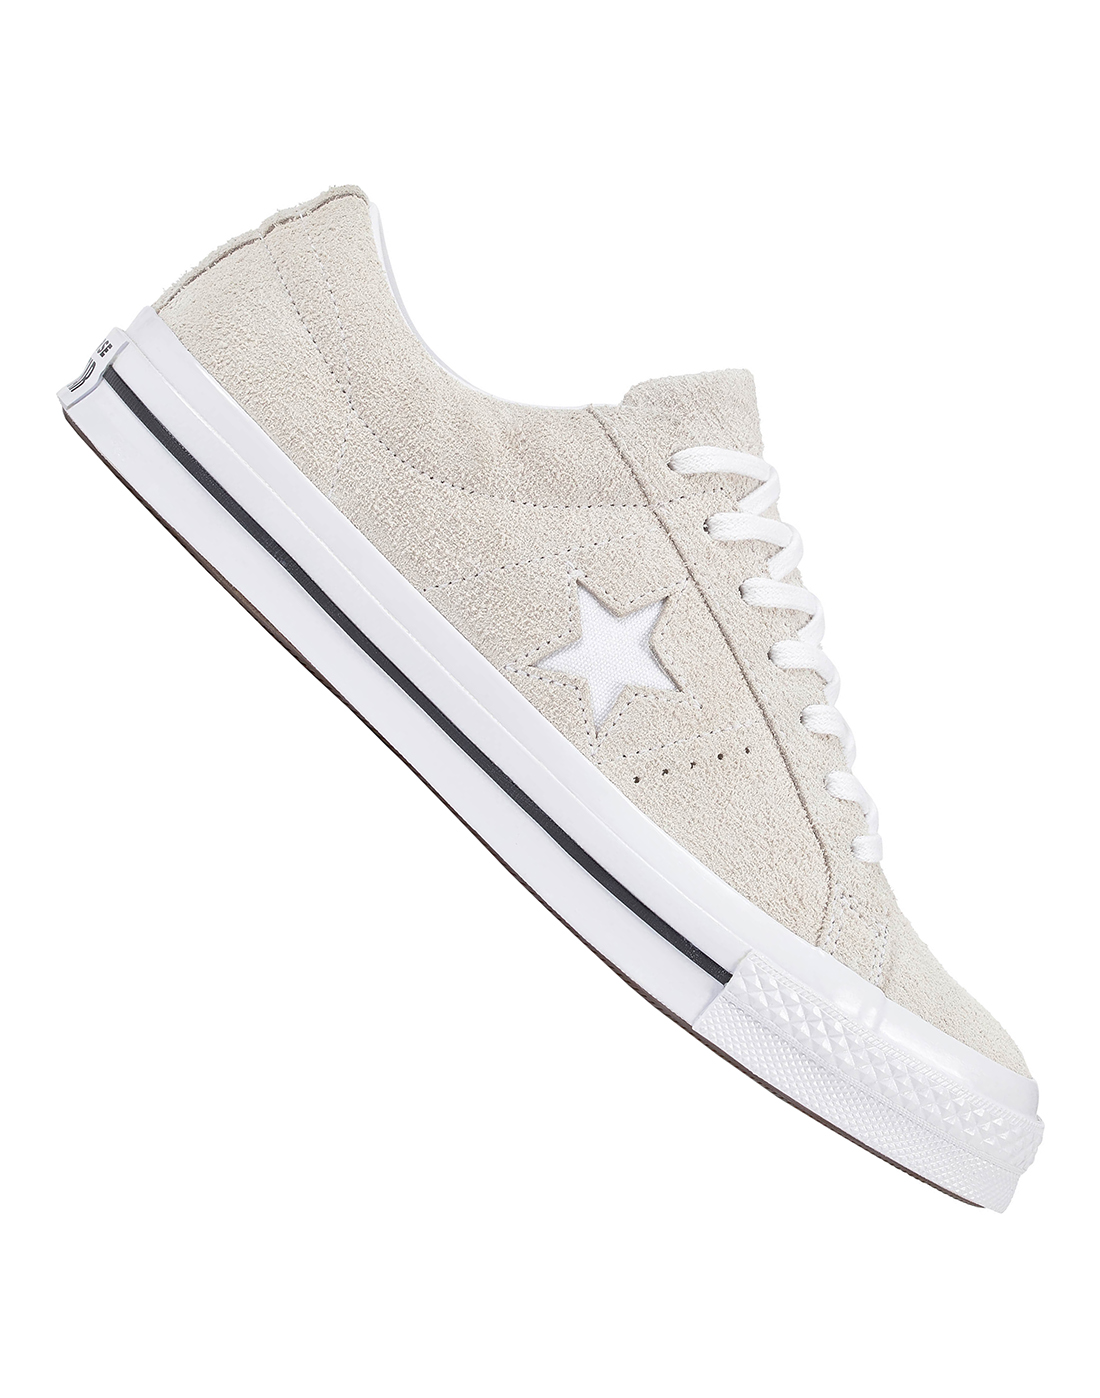 4605391c7a21 Womens One Star Vintage Suede ...